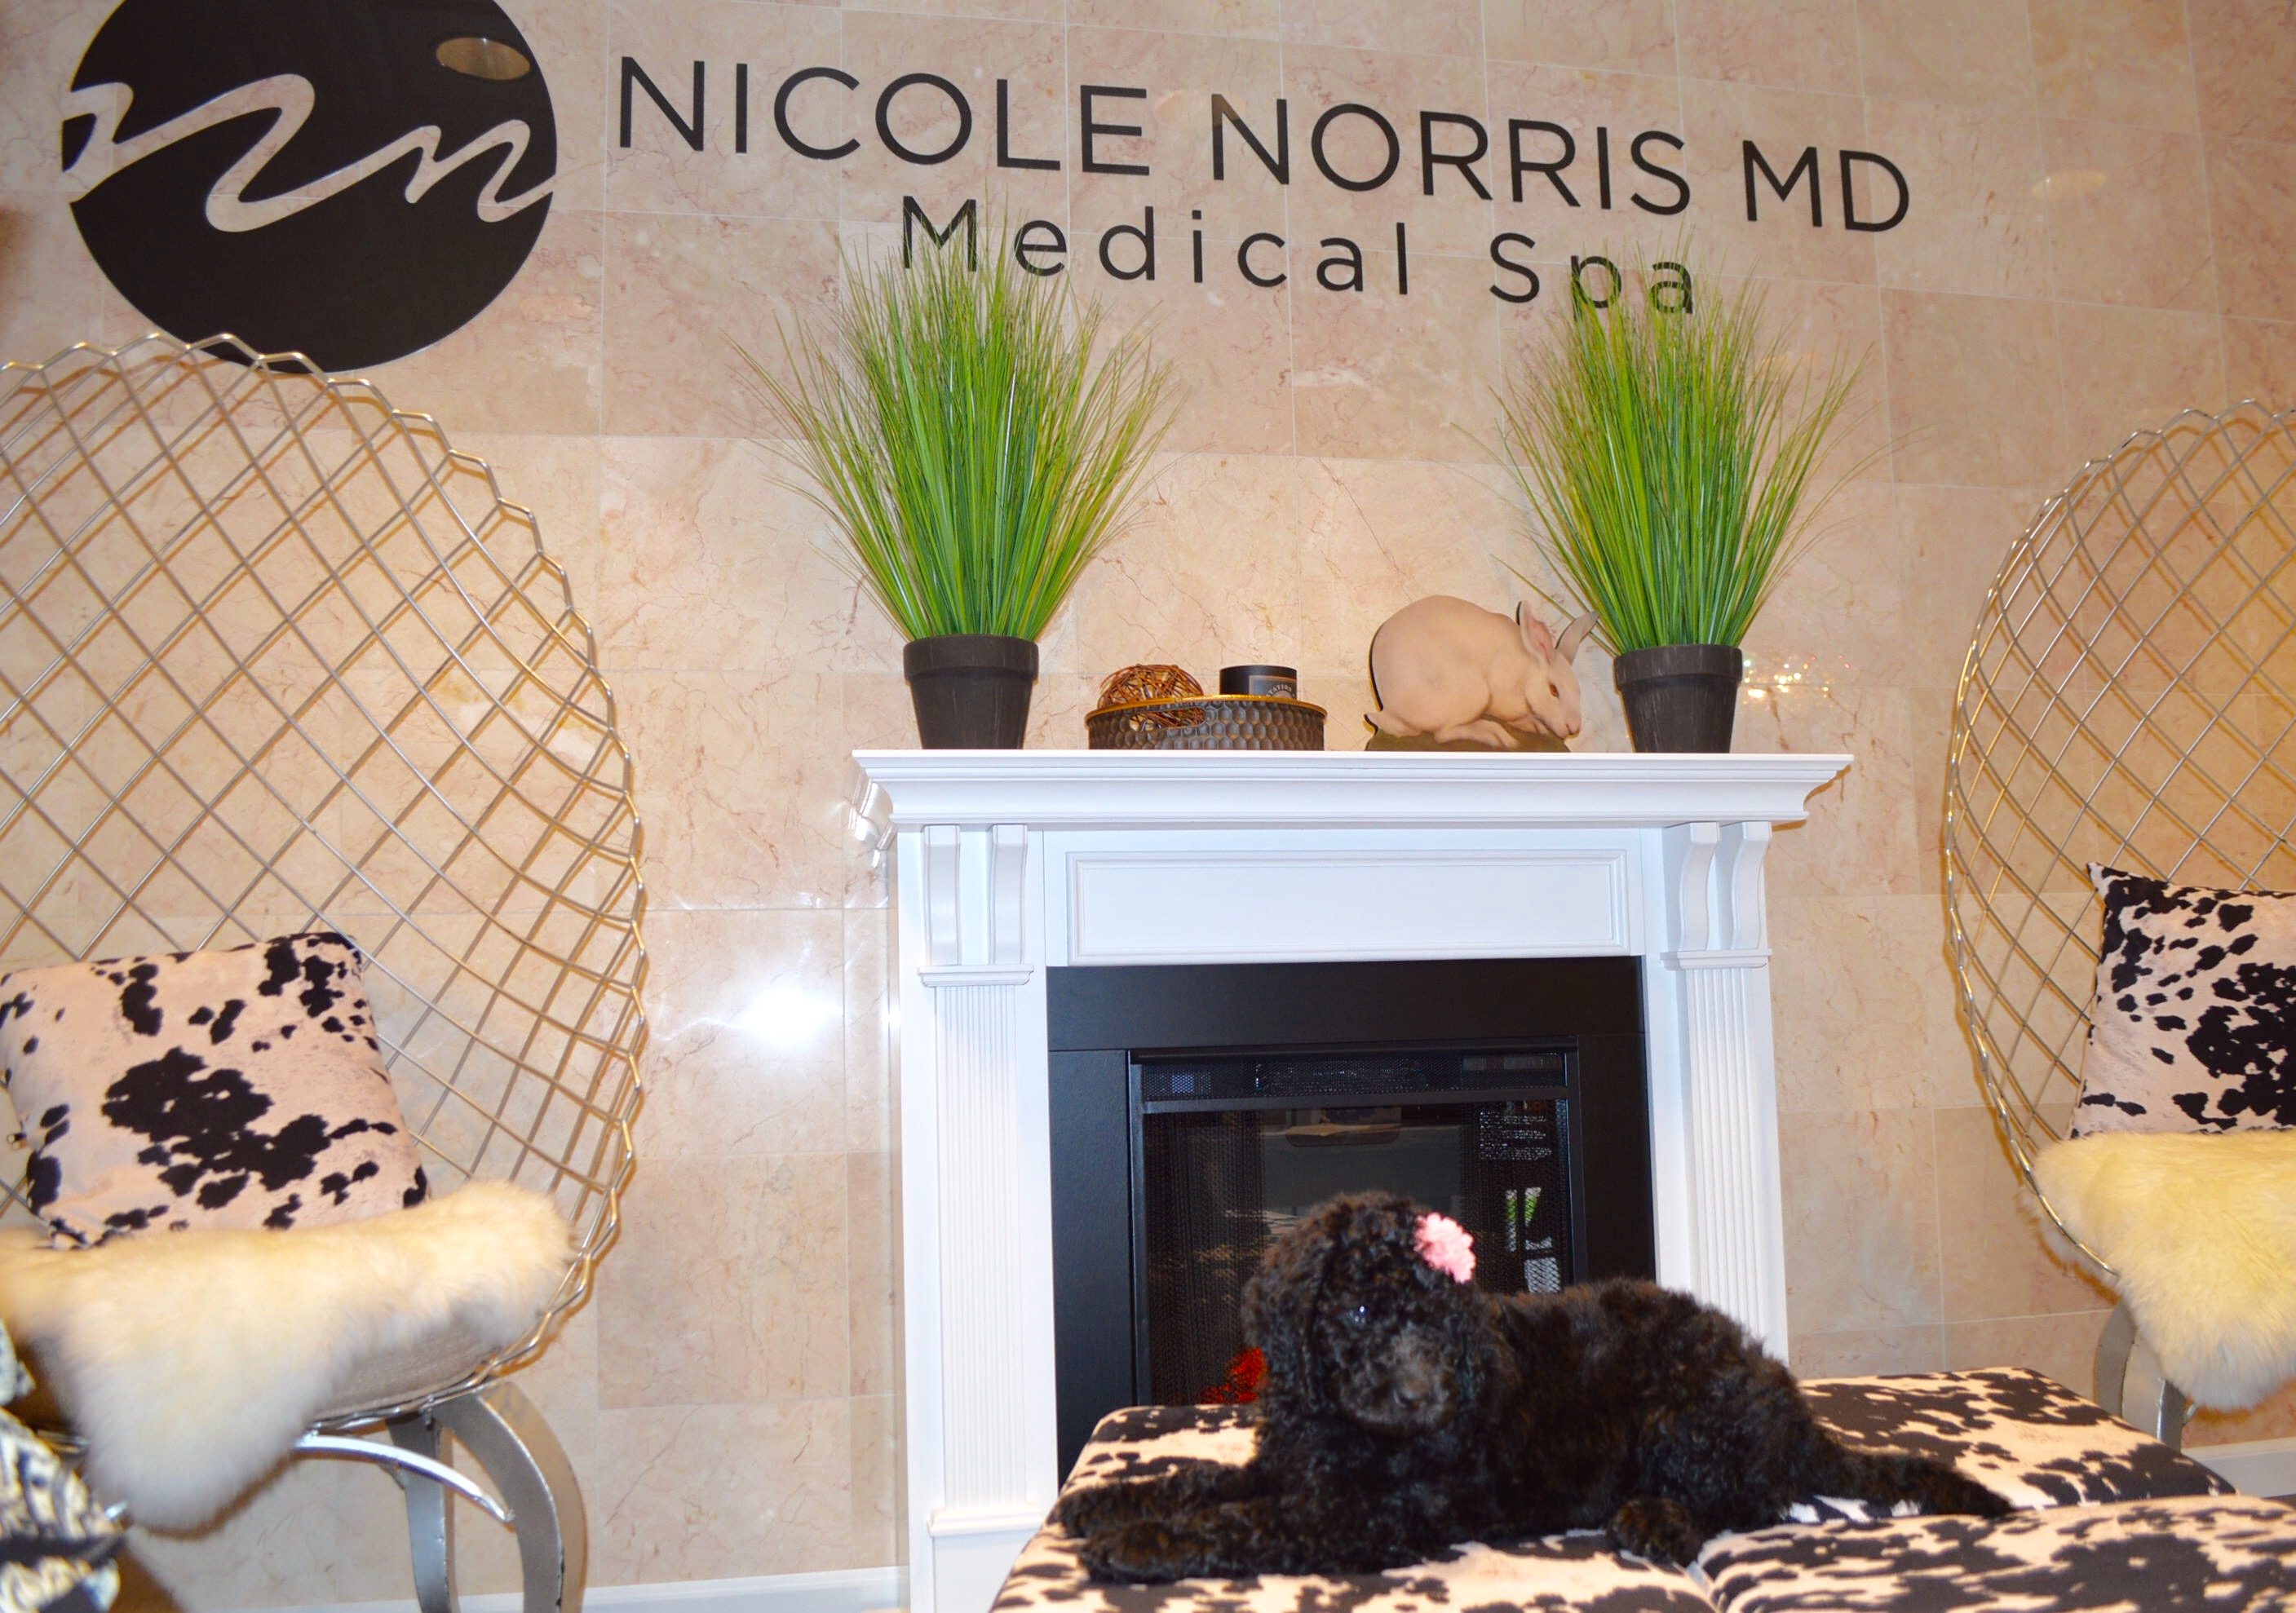 Nicole Norris MD Medical Spa